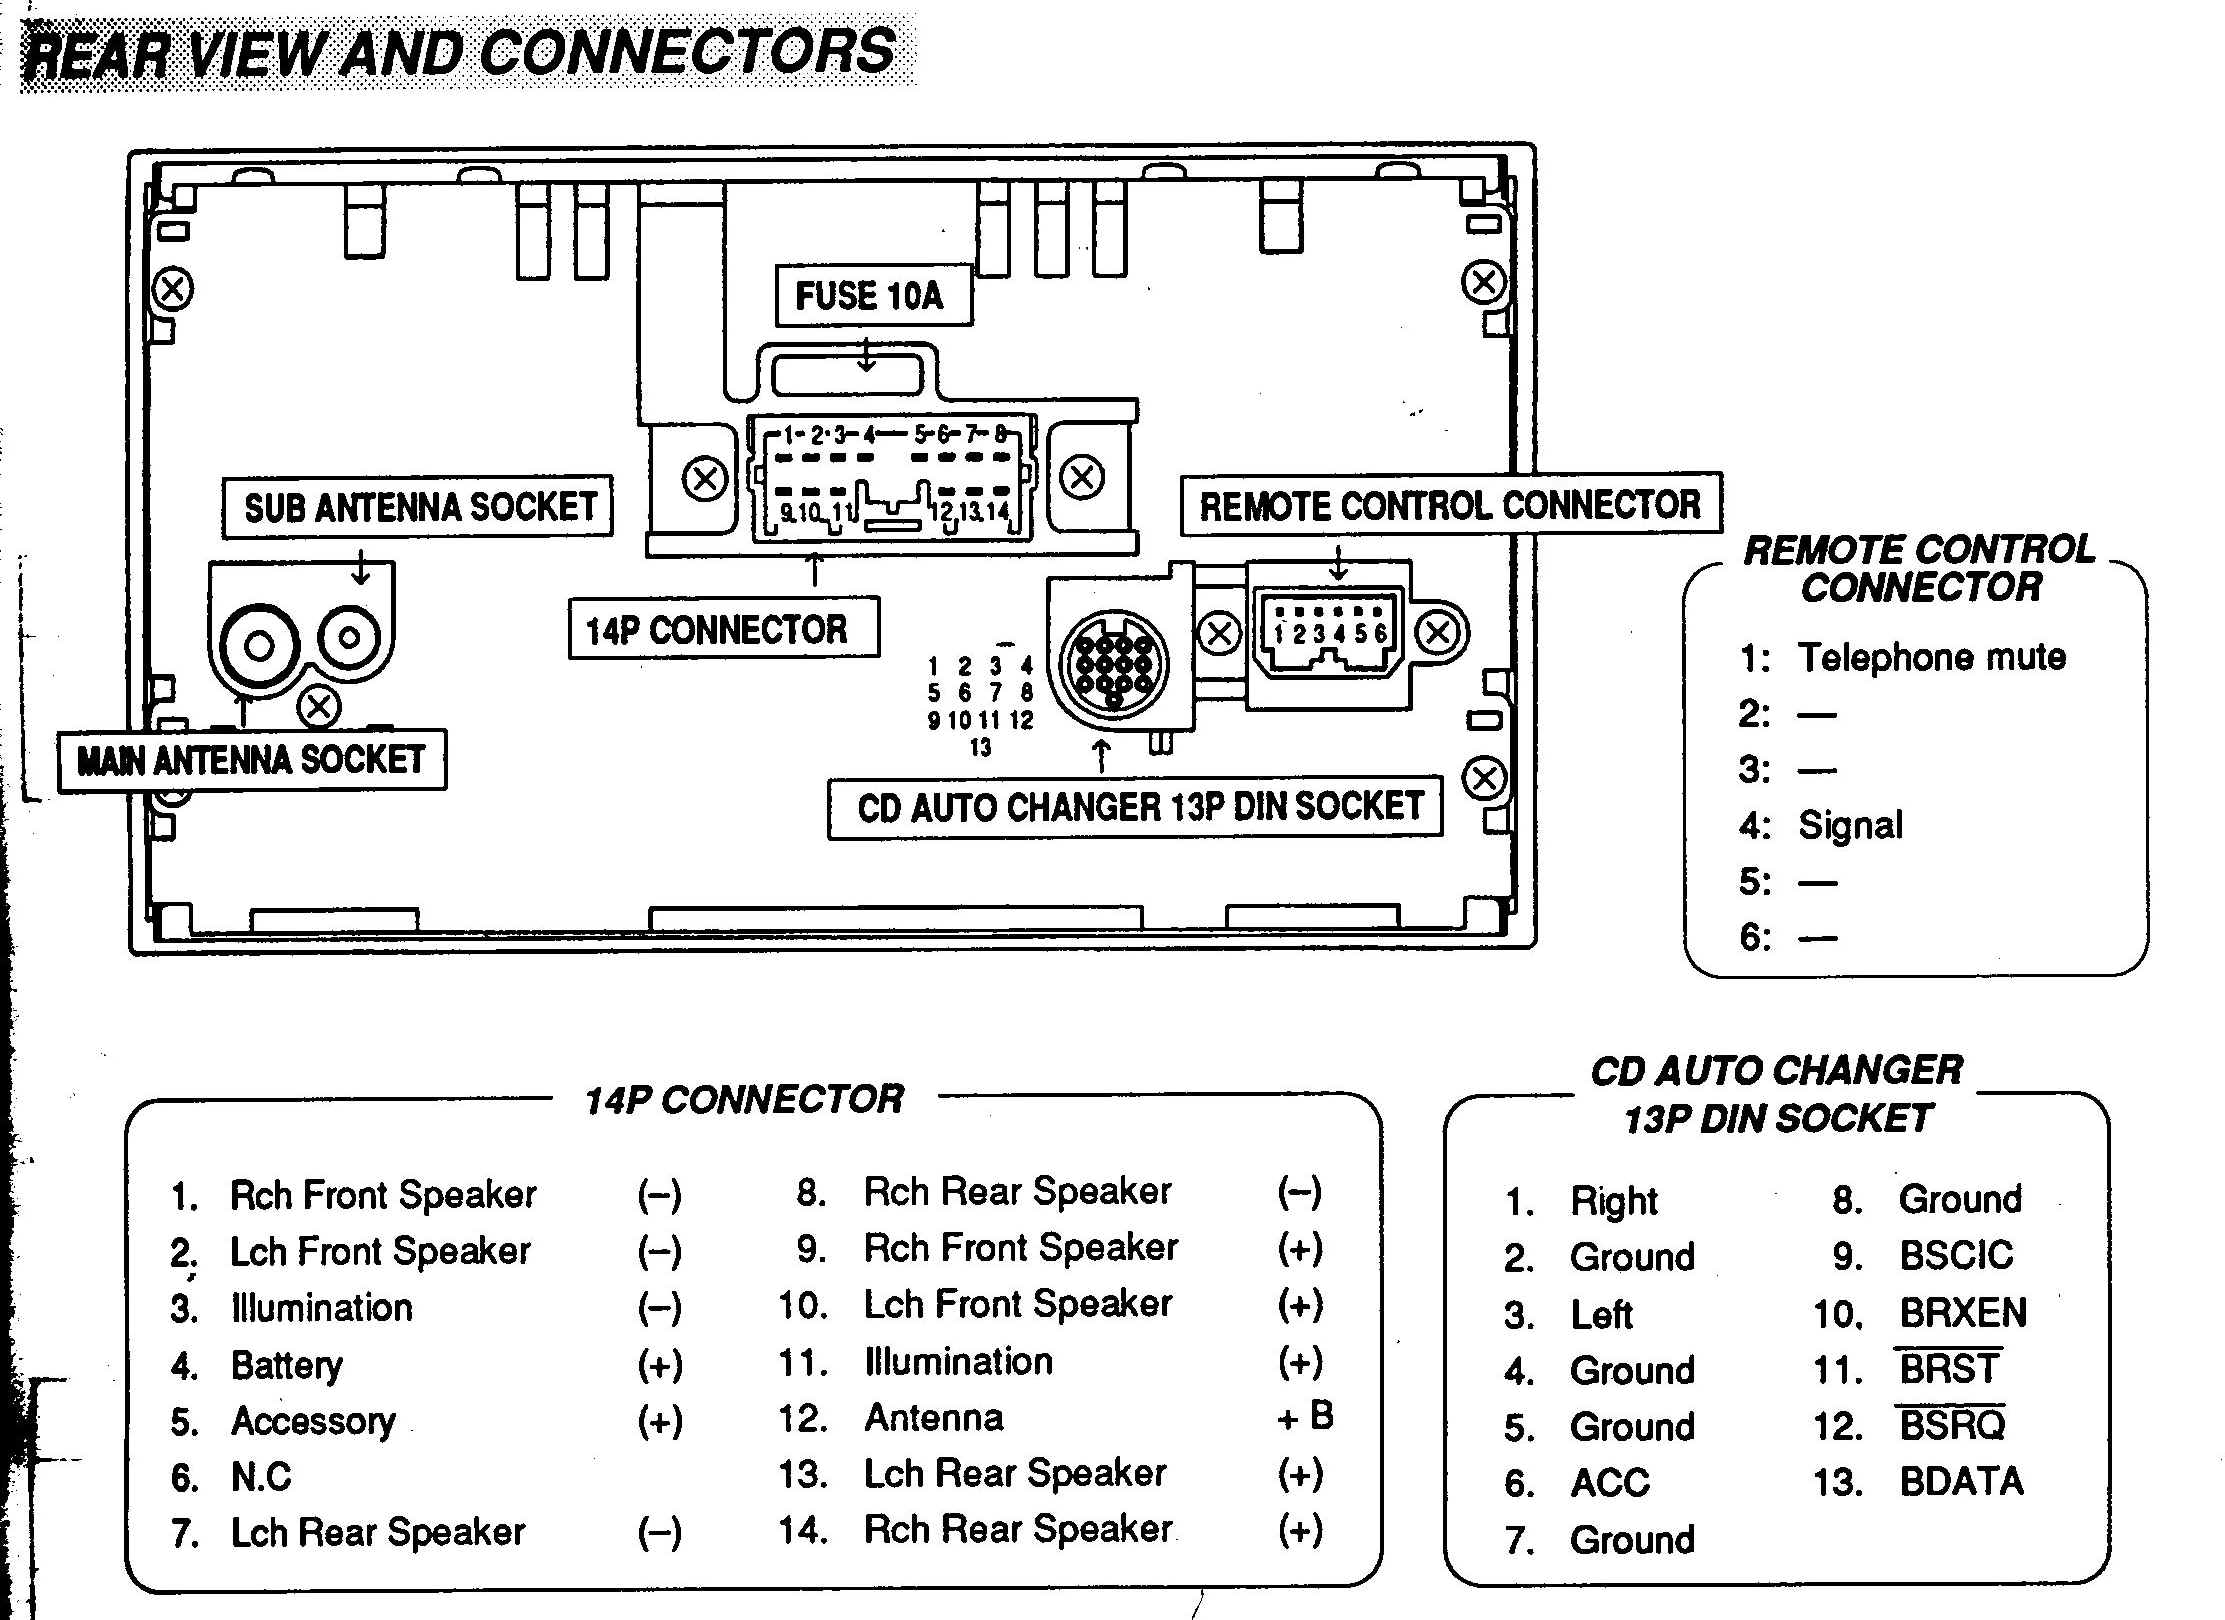 WireHarnessMit121003 mitsubishi radio wiring diagram mitsubishi eclipse wiring diagram mitsubishi pajero radio wiring diagram at readyjetset.co